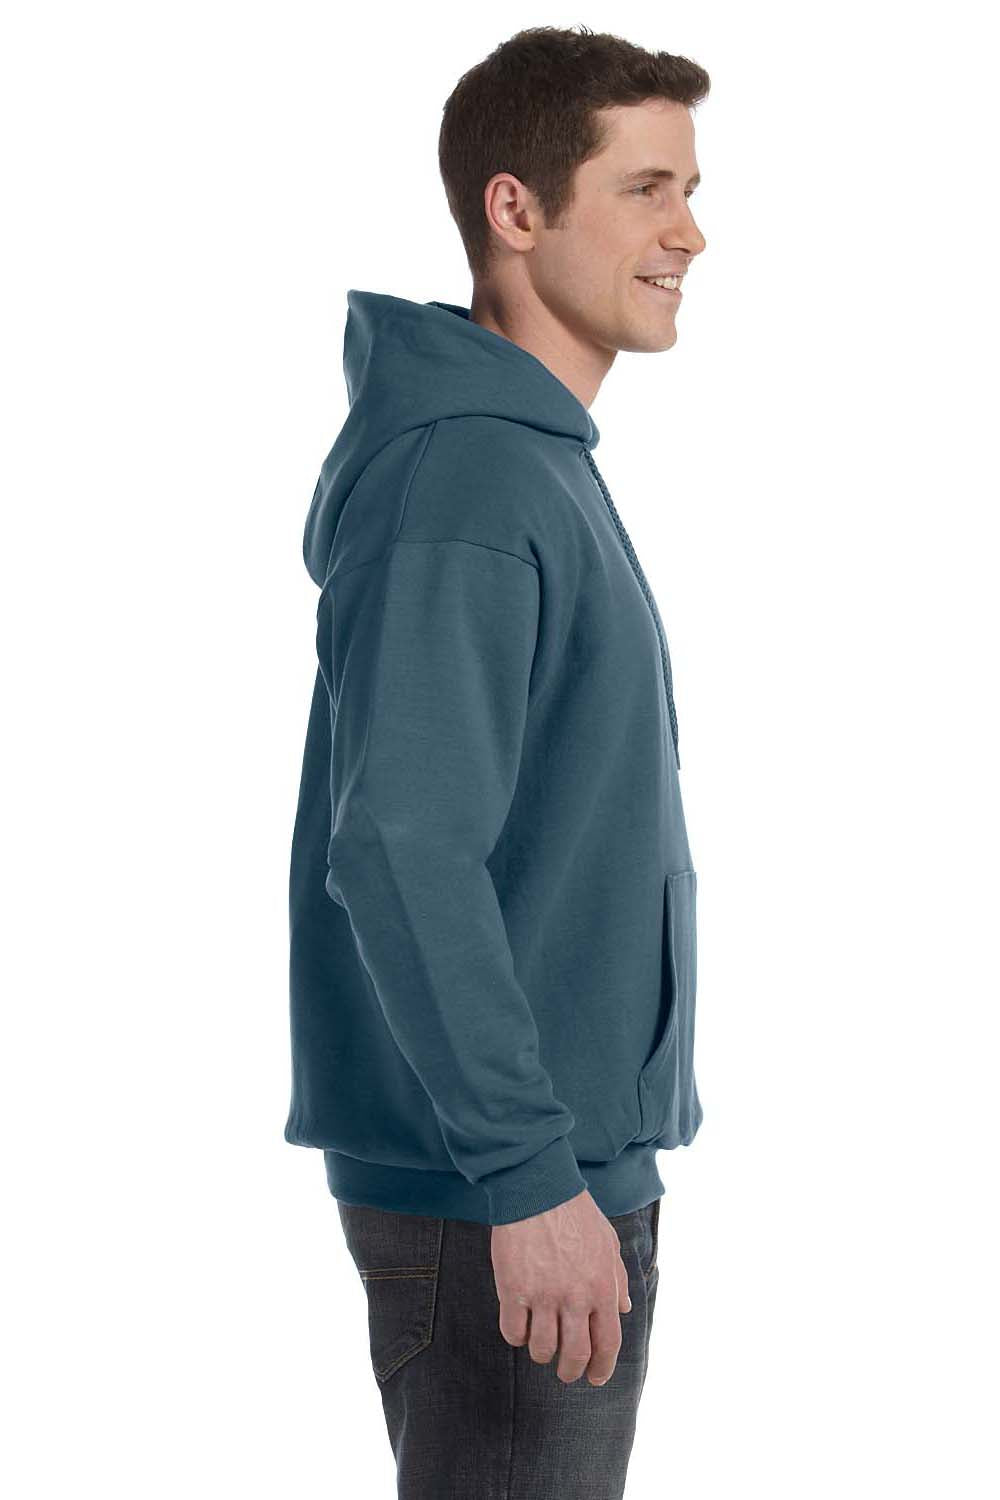 Hanes P170 Mens EcoSmart Print Pro XP Hooded Sweatshirt Hoodie Denim Blue Side